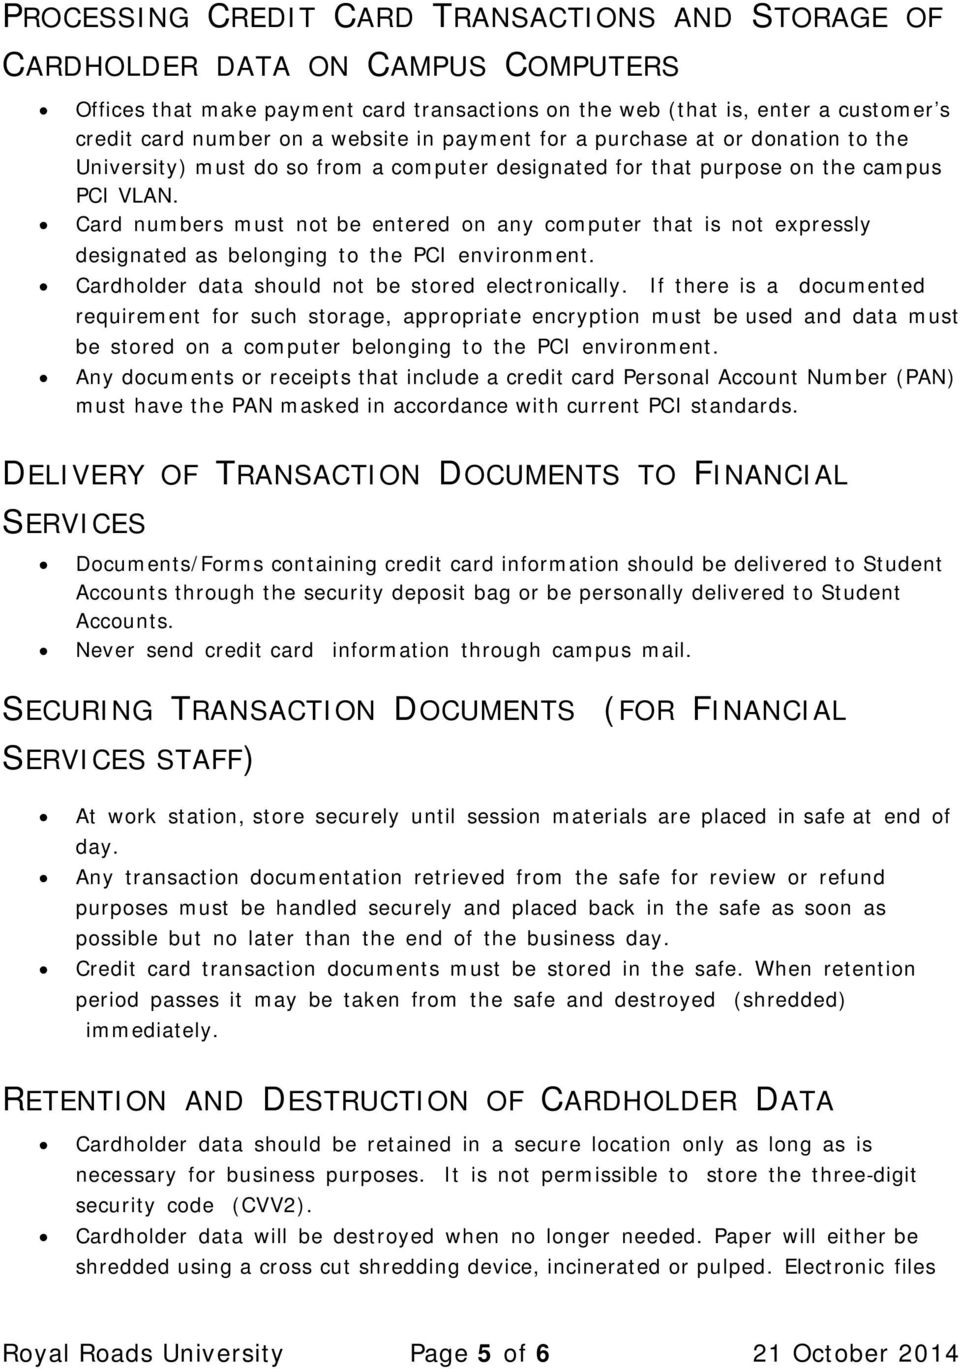 Card numbers must not be entered on any computer that is not expressly designated as belonging to the PCI environment. Cardholder data should not be stored electronically.